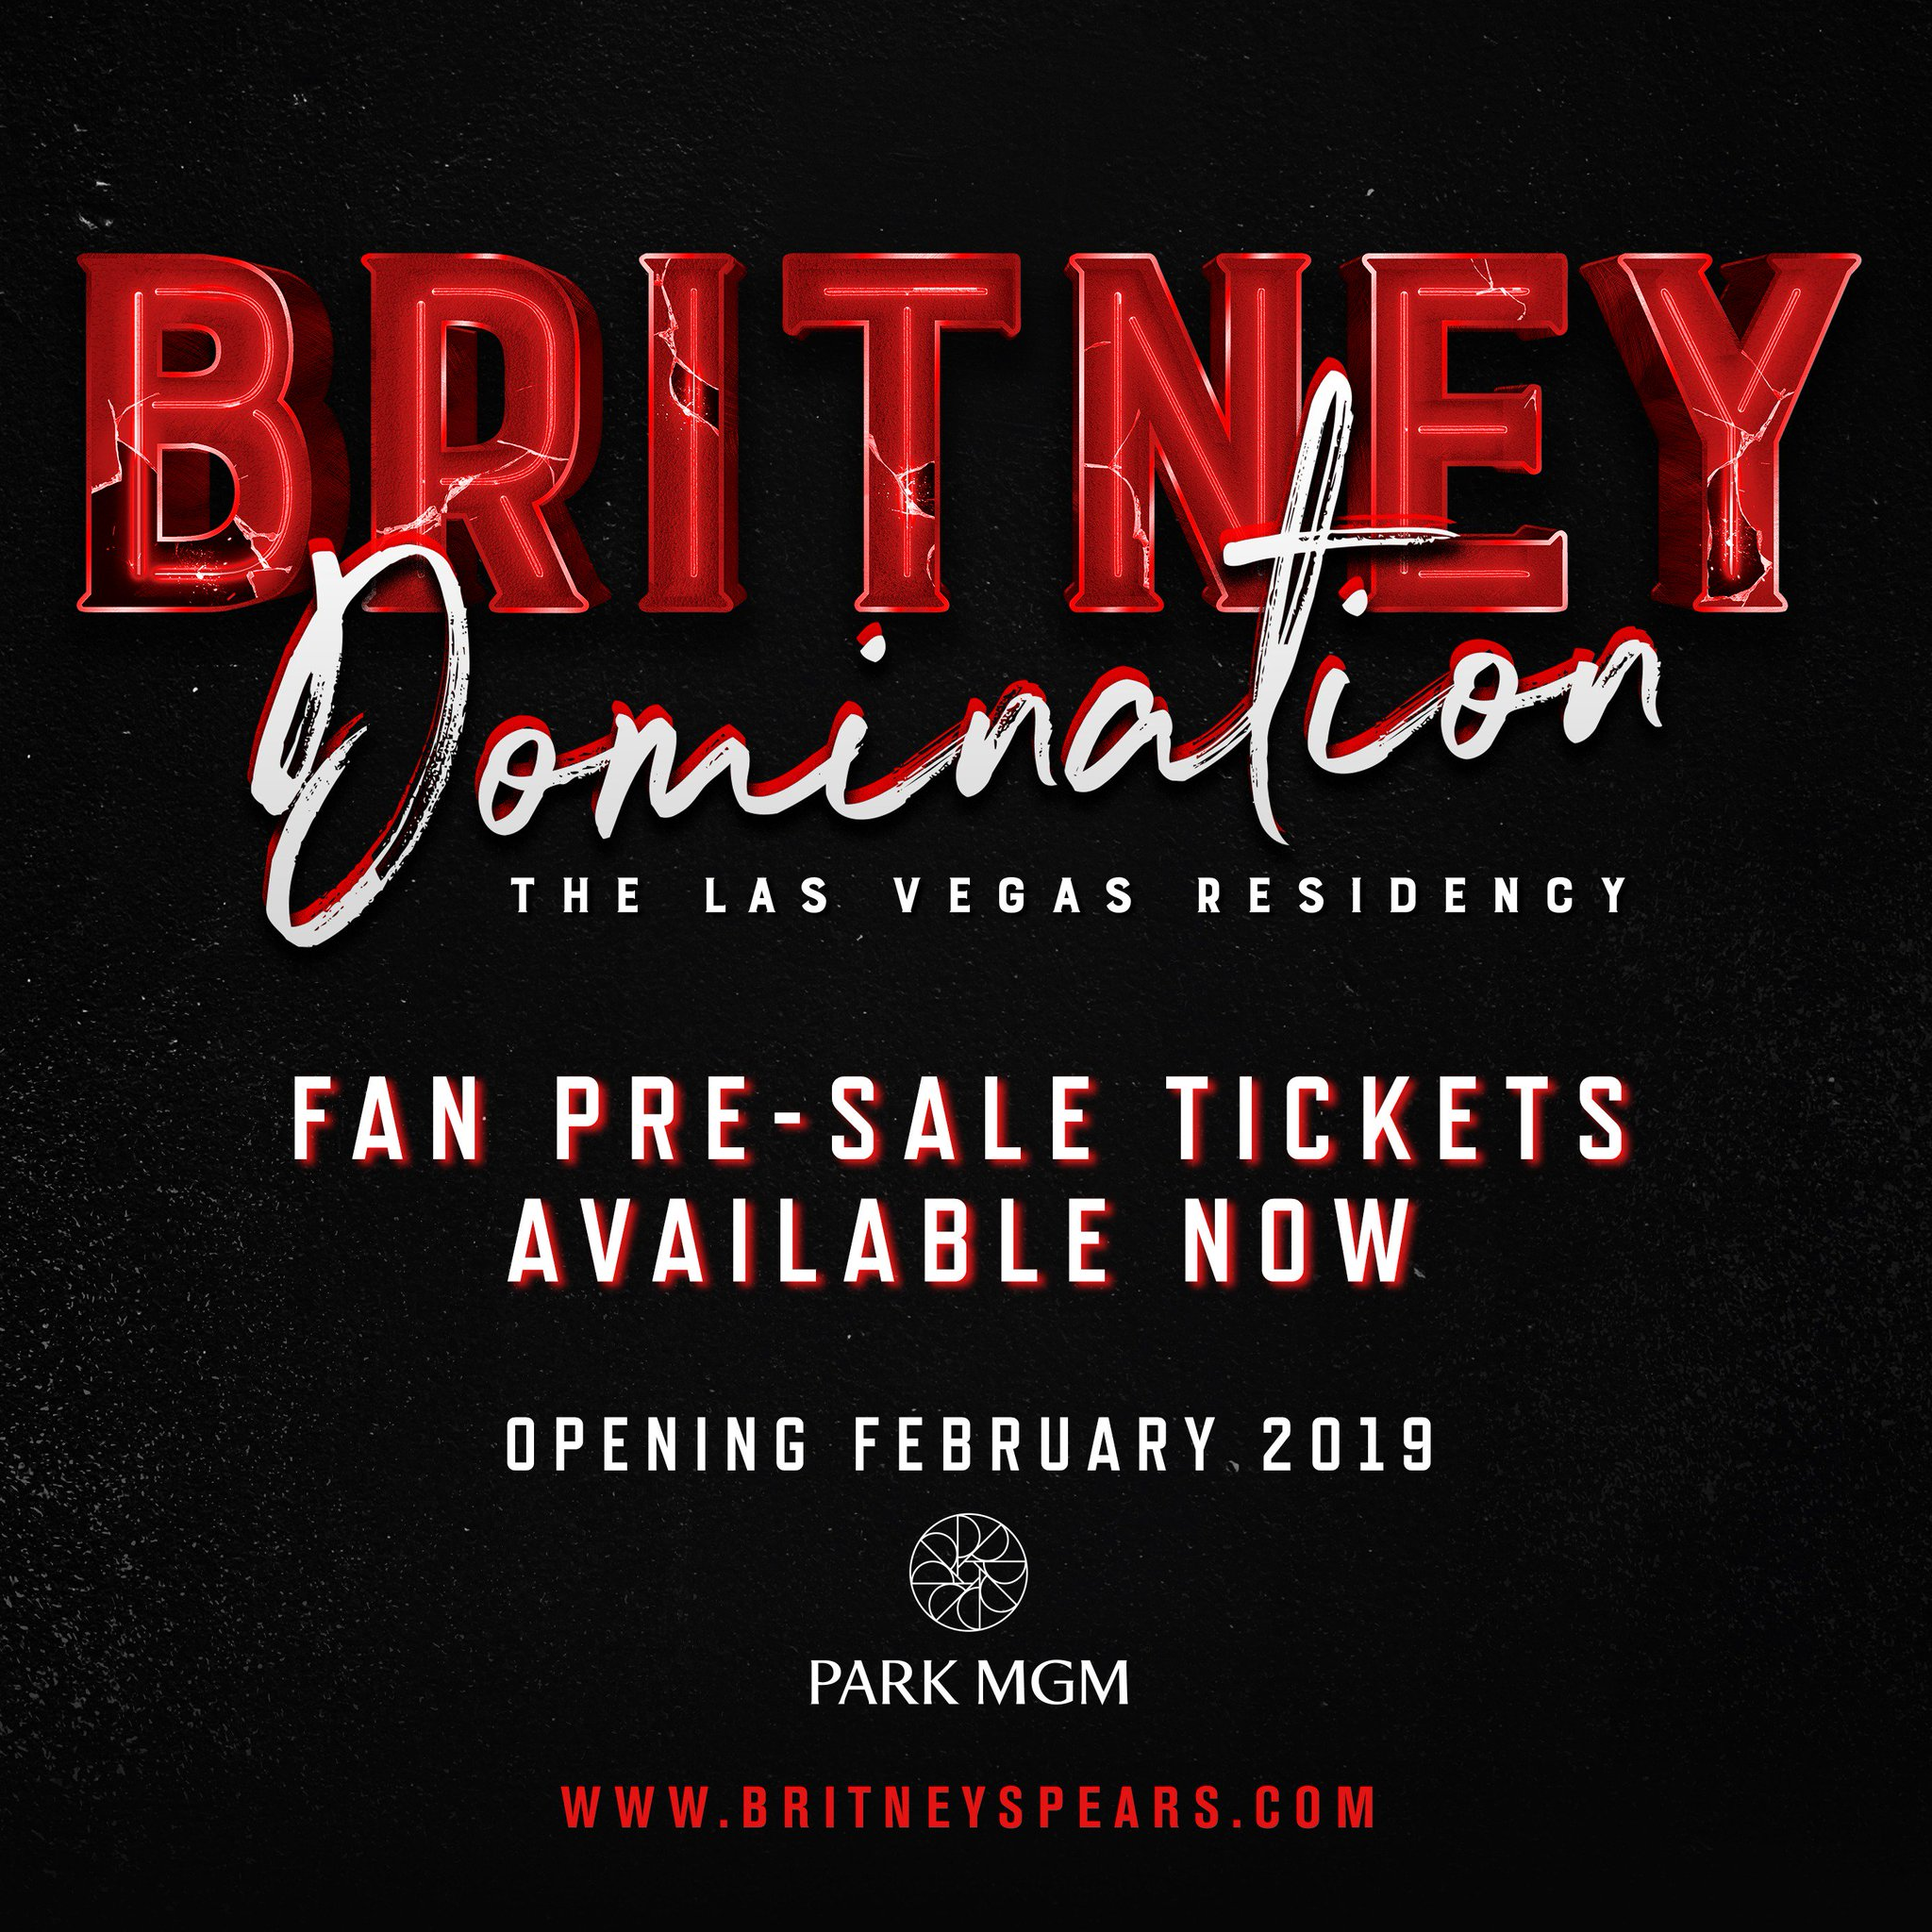 The #BritneyDomination fan pre-sale is going on right now!! ��❤️�� https://t.co/KYA36RI9Zh https://t.co/KQnJICvAOW